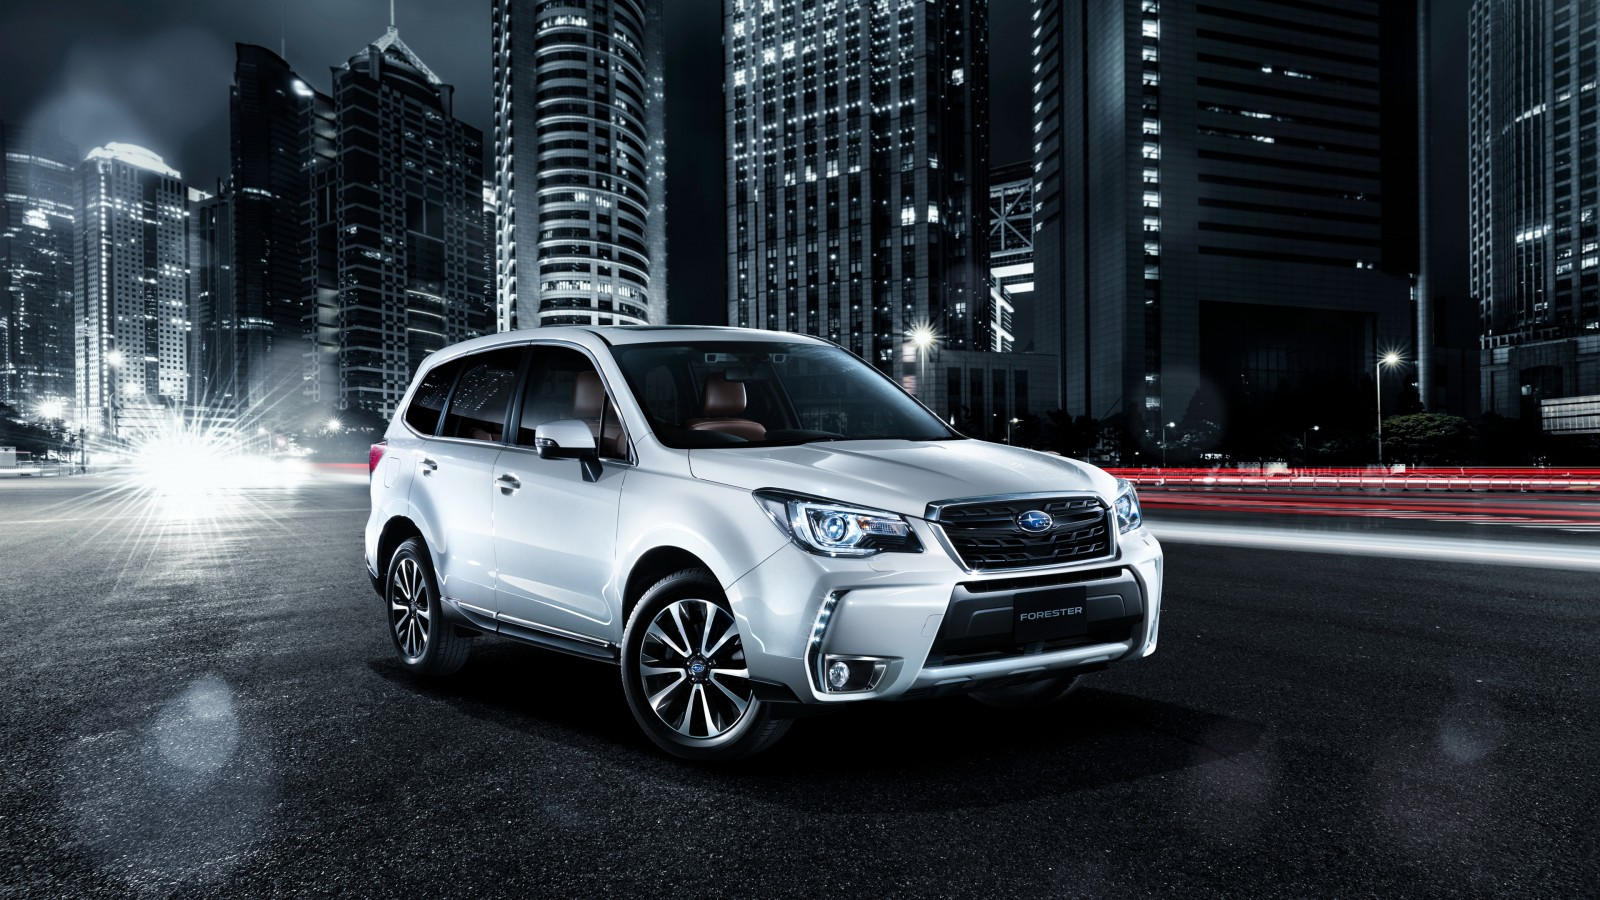 Maxresdefault also Ral Mf Ur Rd Wh likewise Maxresdefault further R besides Tribeca Spies. on subaru forester sti